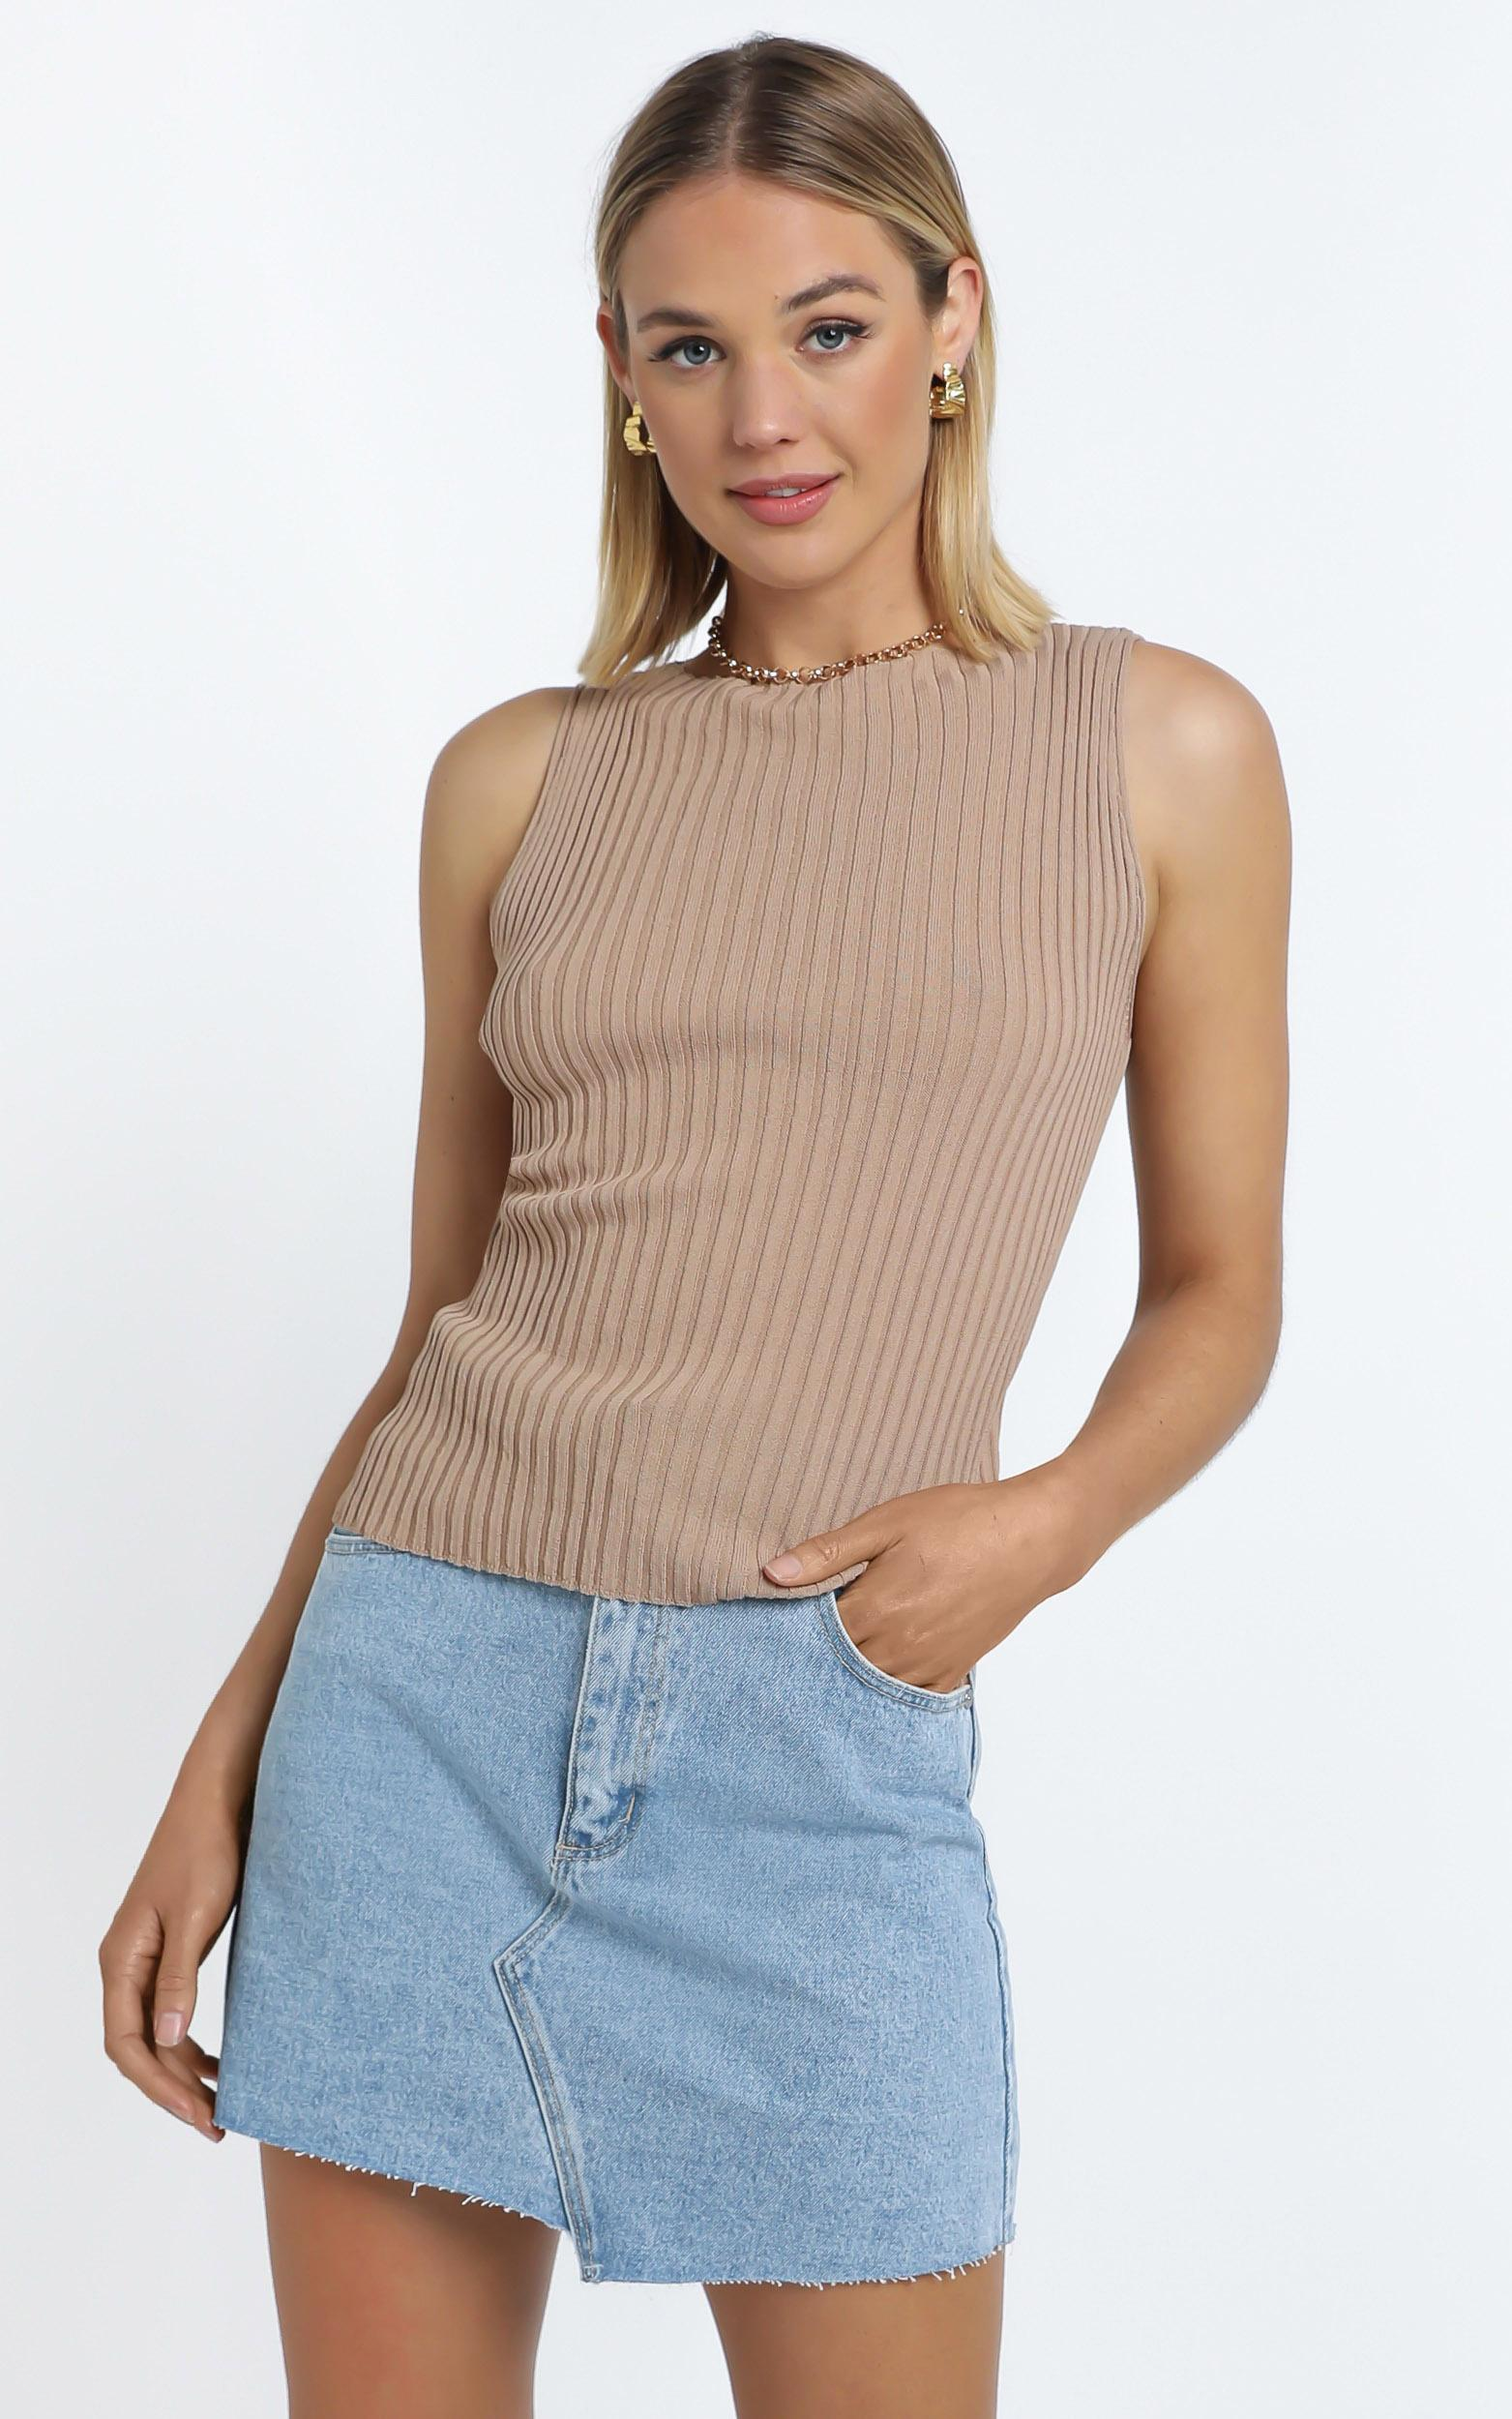 Laylah Knit top in Beige - 14 (XL), CRE1, hi-res image number null